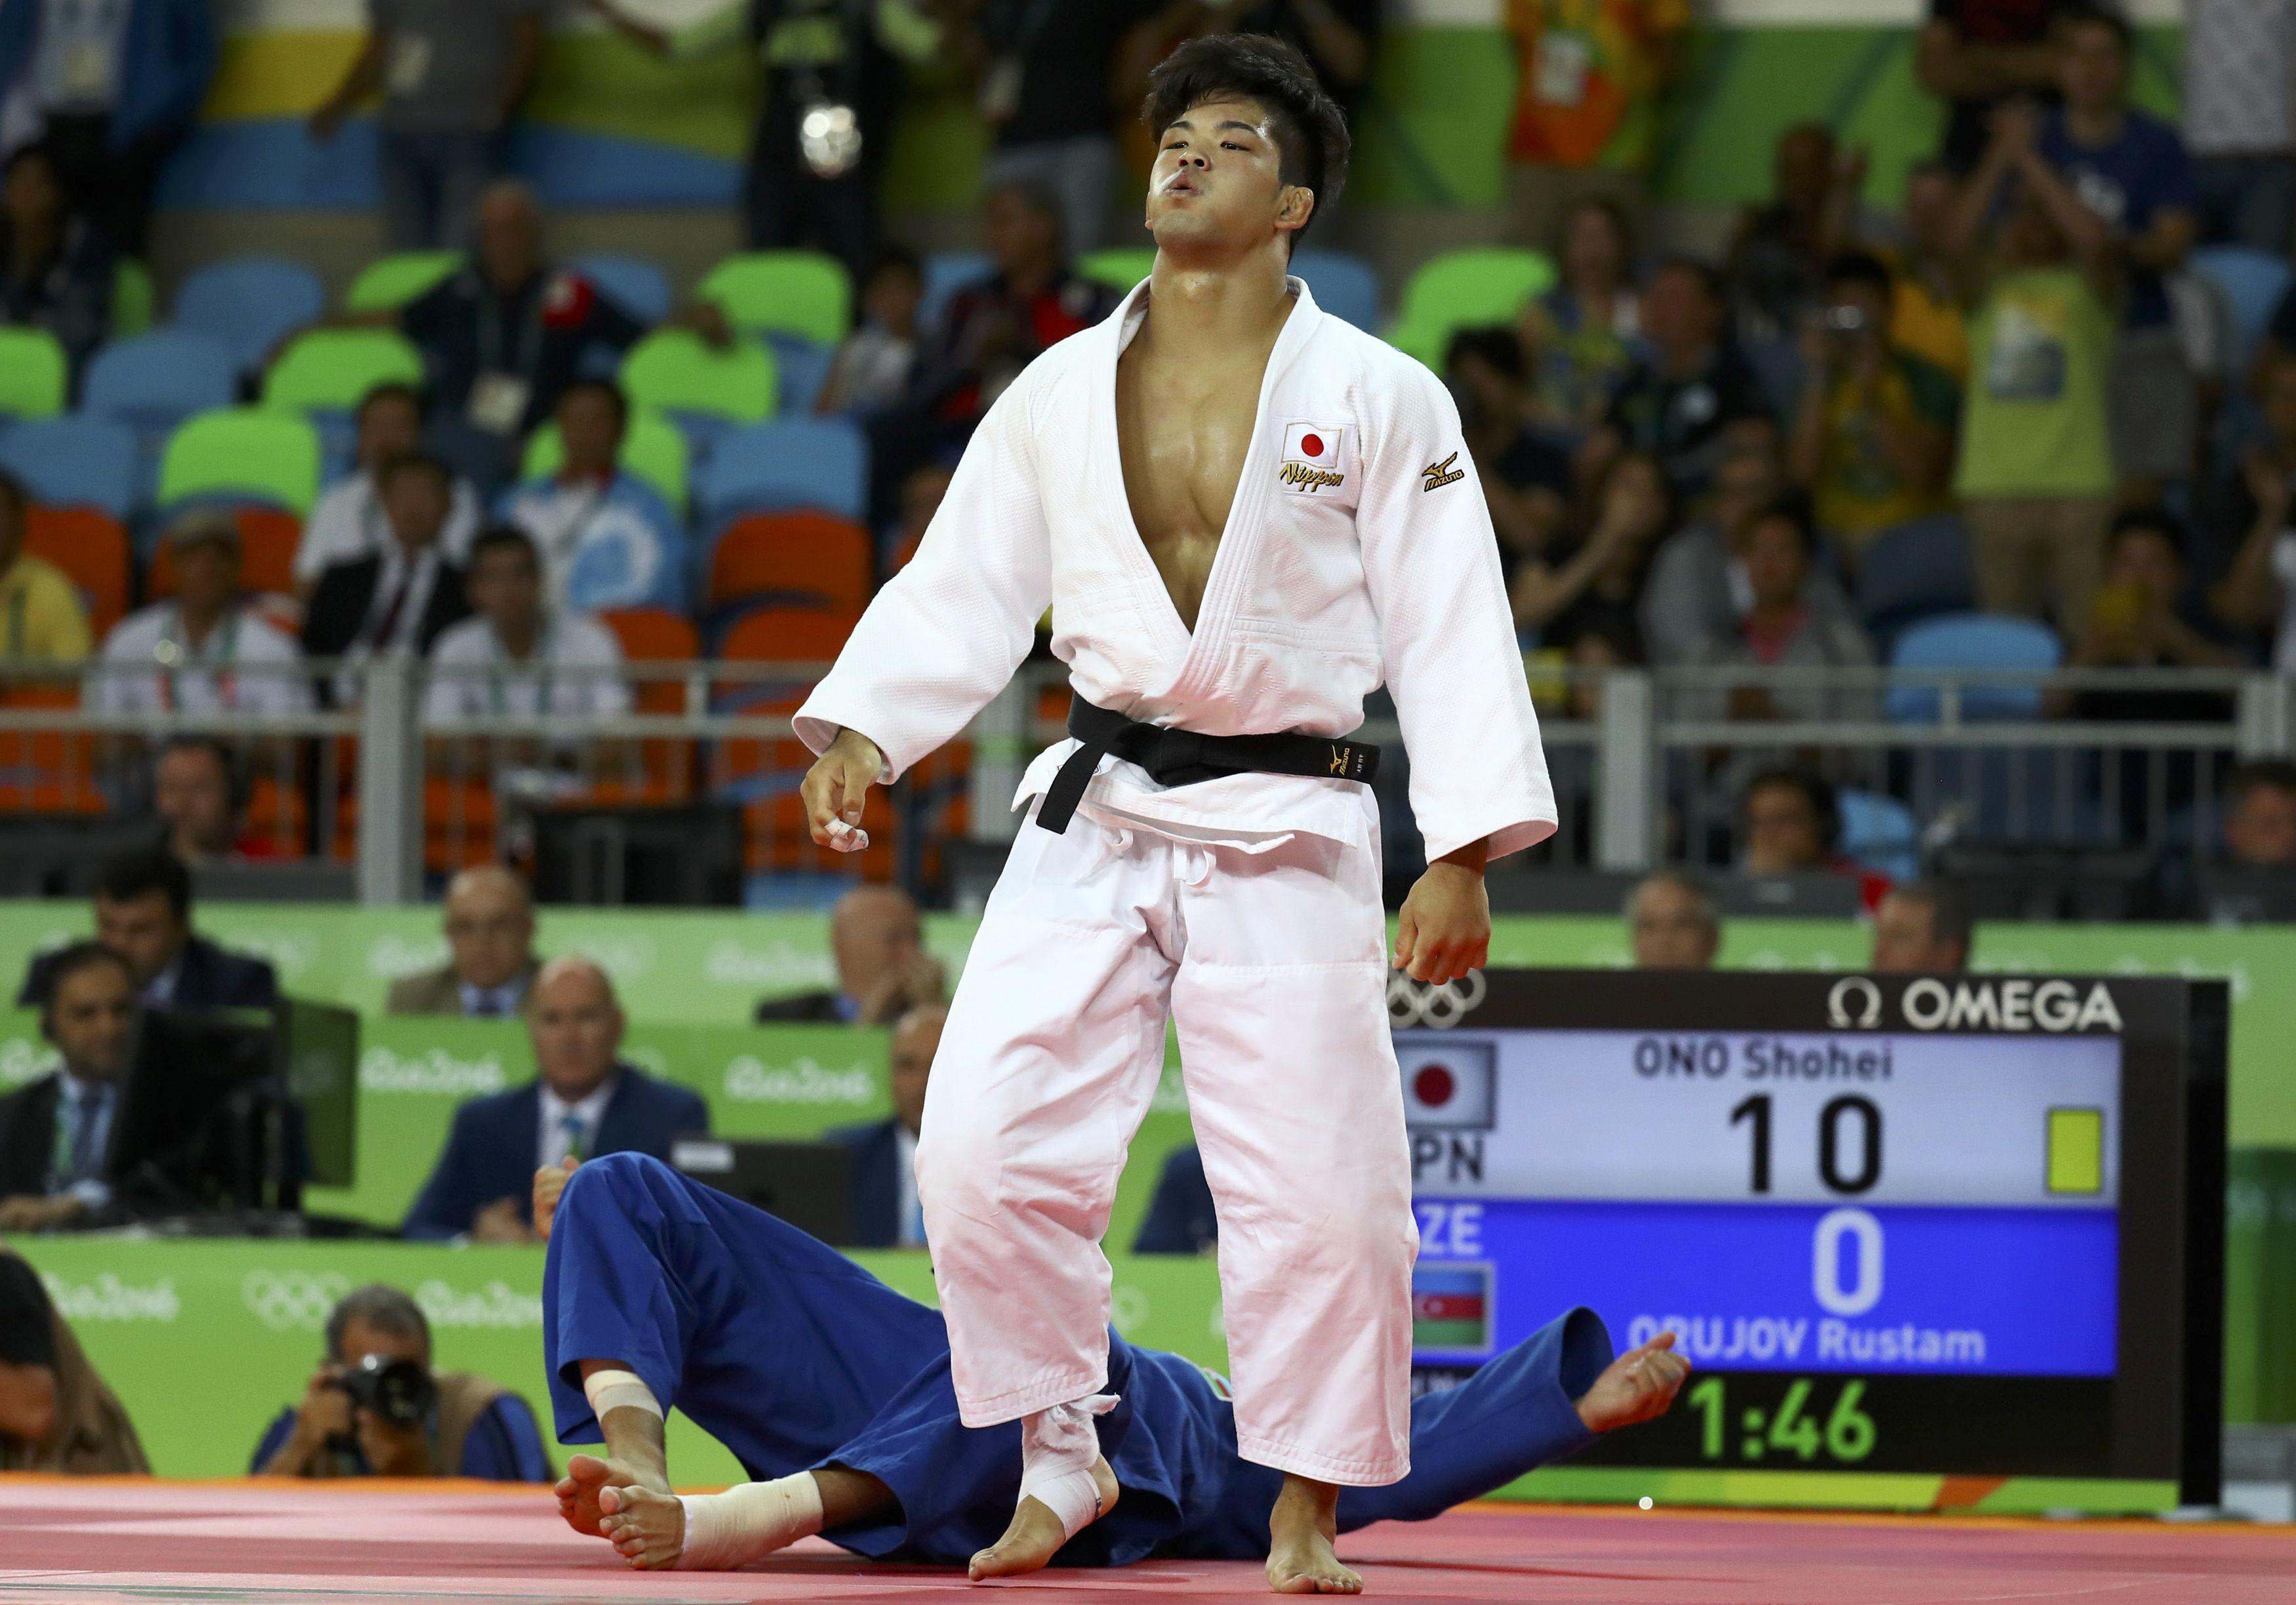 Shohei Ono of Japan reacts Monday after defeating Azerbaijan's Rustam Orujov to win Olympic gold in Rio. | REUTERS